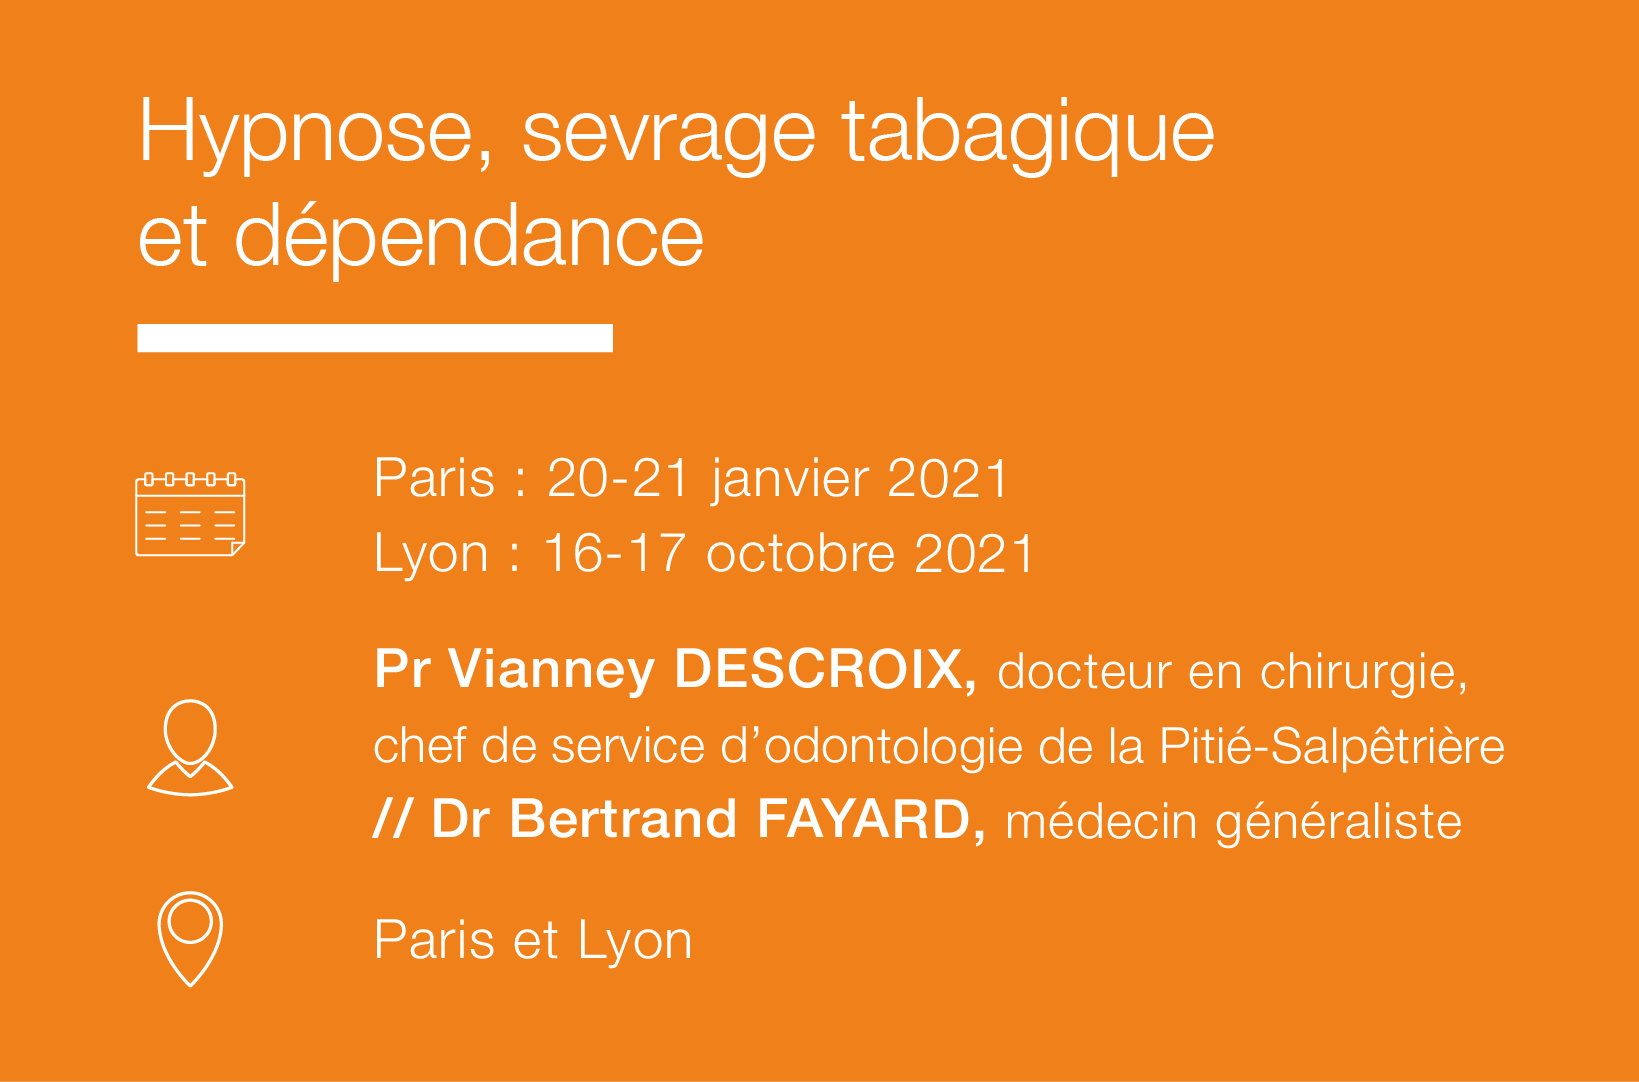 Seminaire Hypnose Sevrage tabagique dependance-IFH